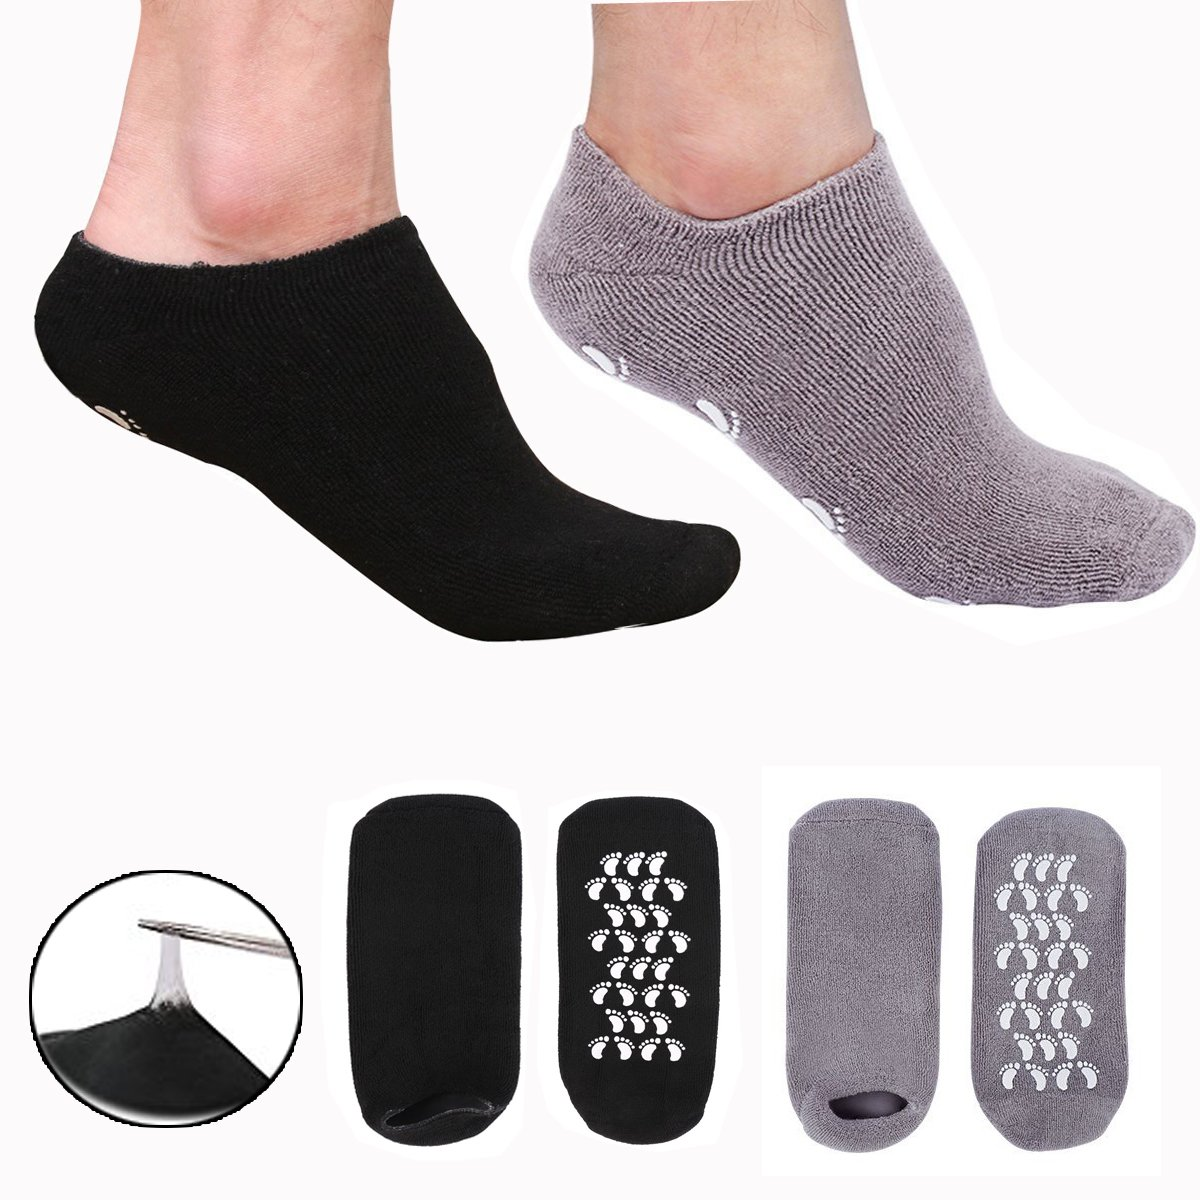 EXPER Moisturizing Gel Spa Humectant Moisturizer Socks for Men's Large Feet Size 10-12 Dry Hard Broken Rough Skin Cracked Heel Silicone Heel Socks (Black + Grey)